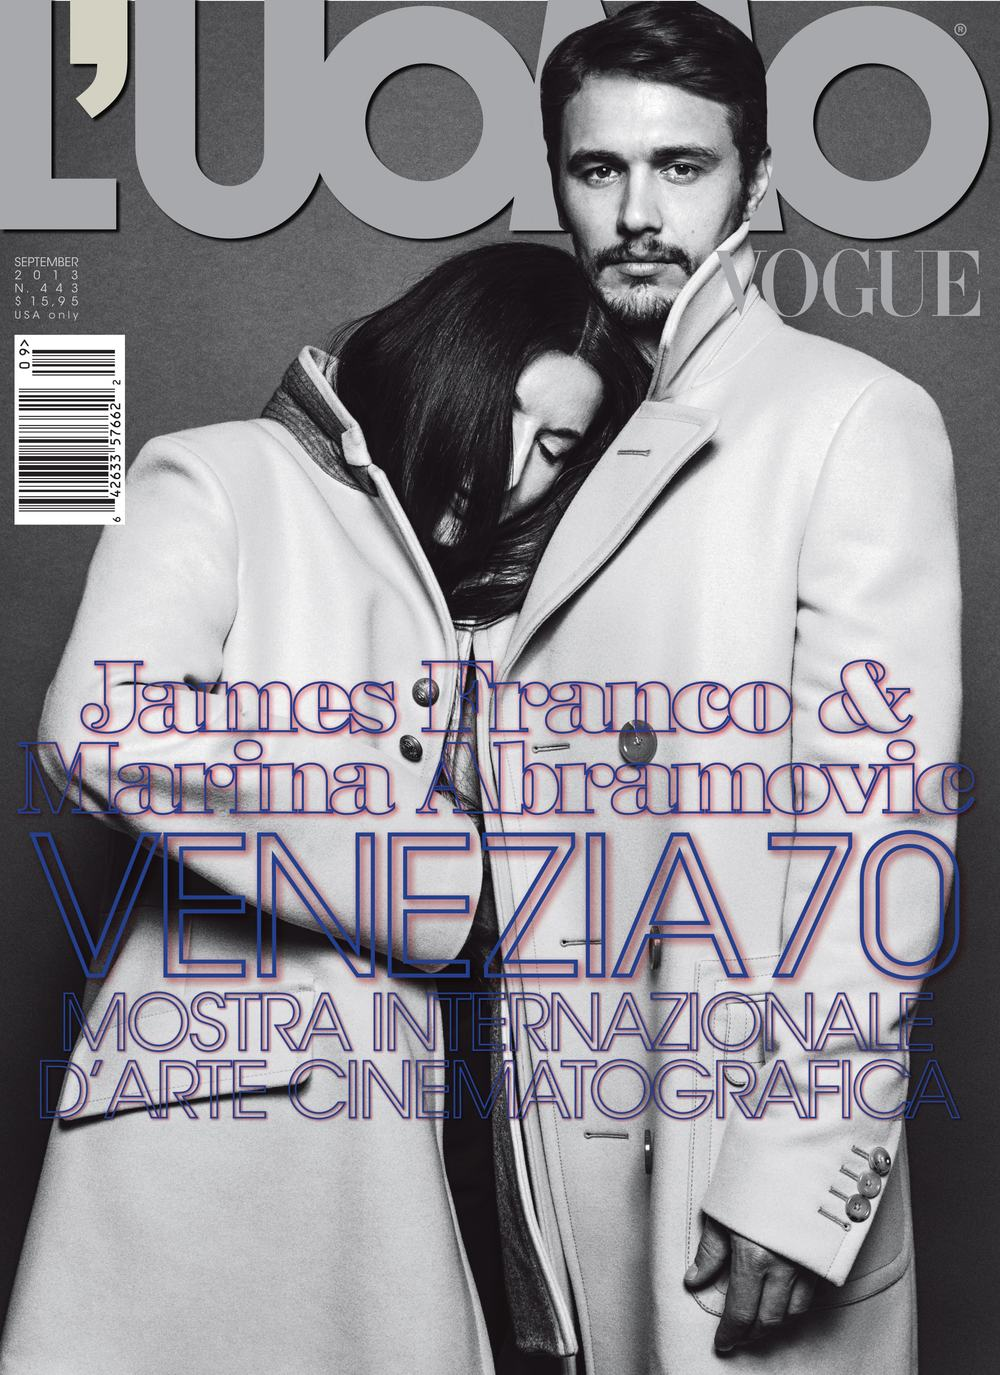 MARINA ABRAMOVIC & JAMES FRANCO